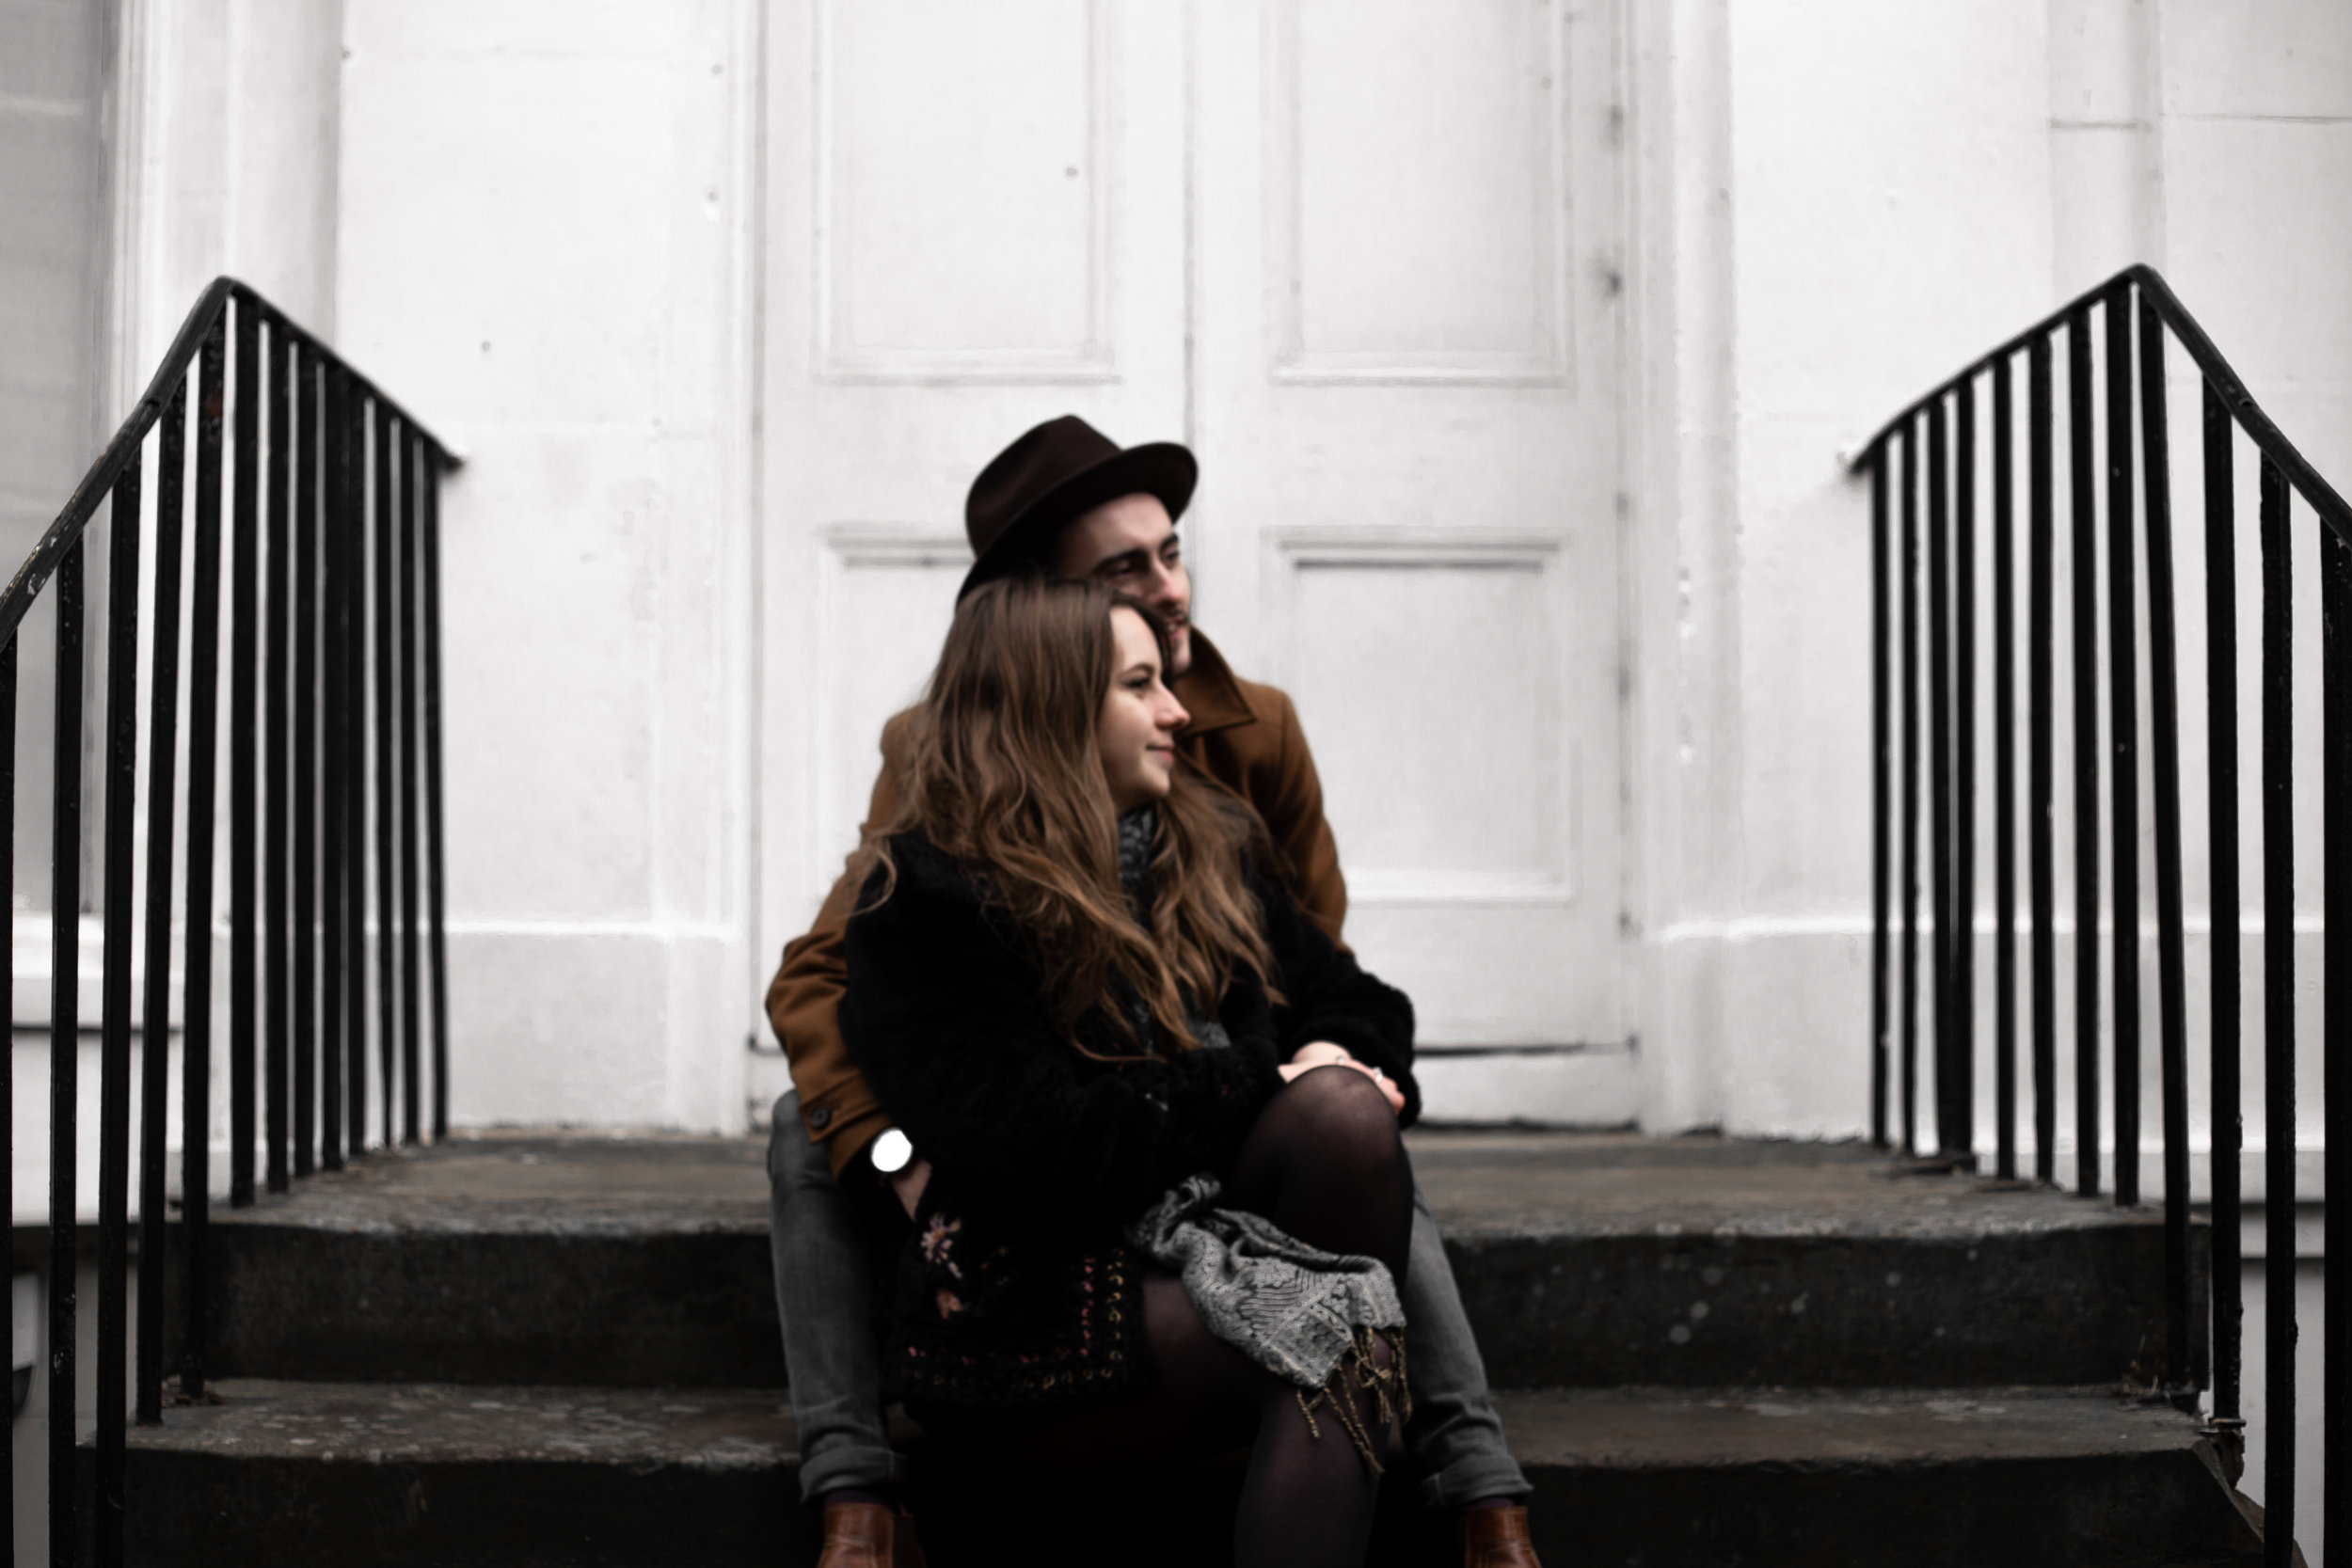 Paula_Russell_Photography_Edinburgh_Couple_Session_1.